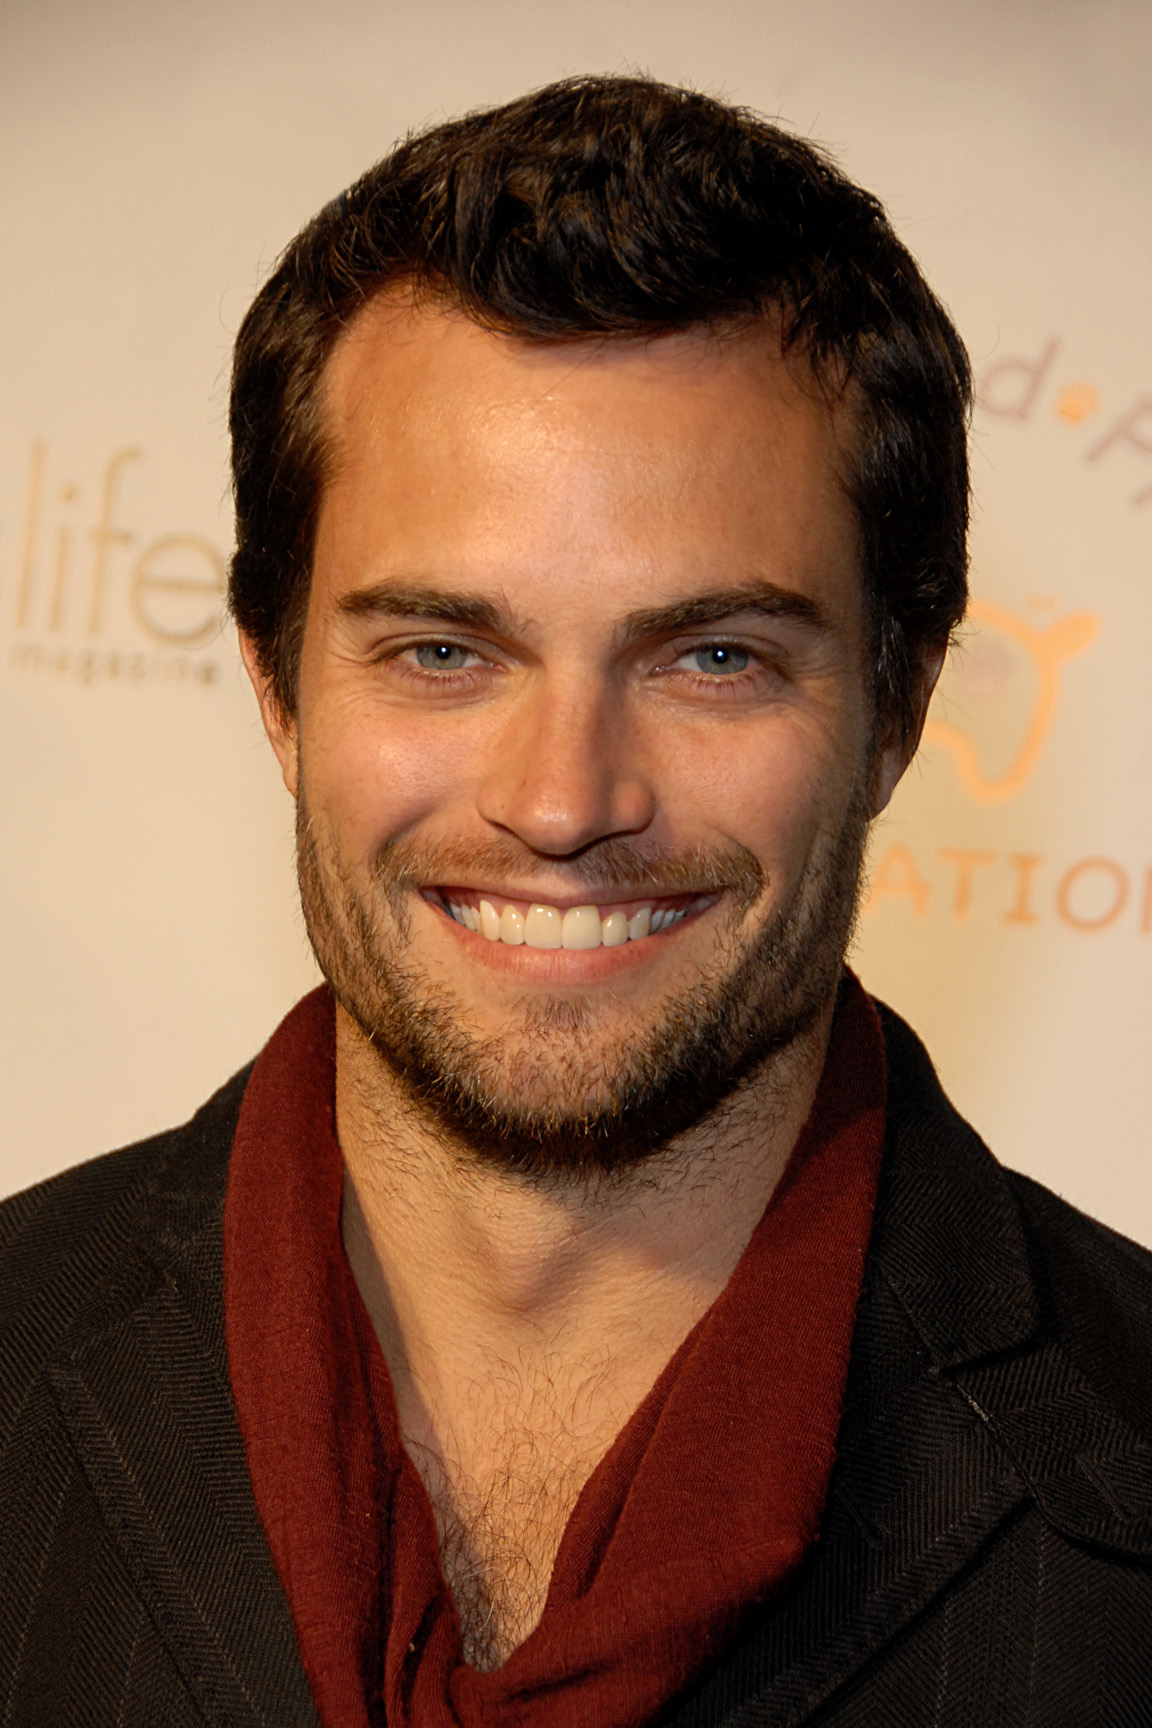 Scott Elrod | How to Get Away with Murder Wiki | FANDOM powered by Wikia